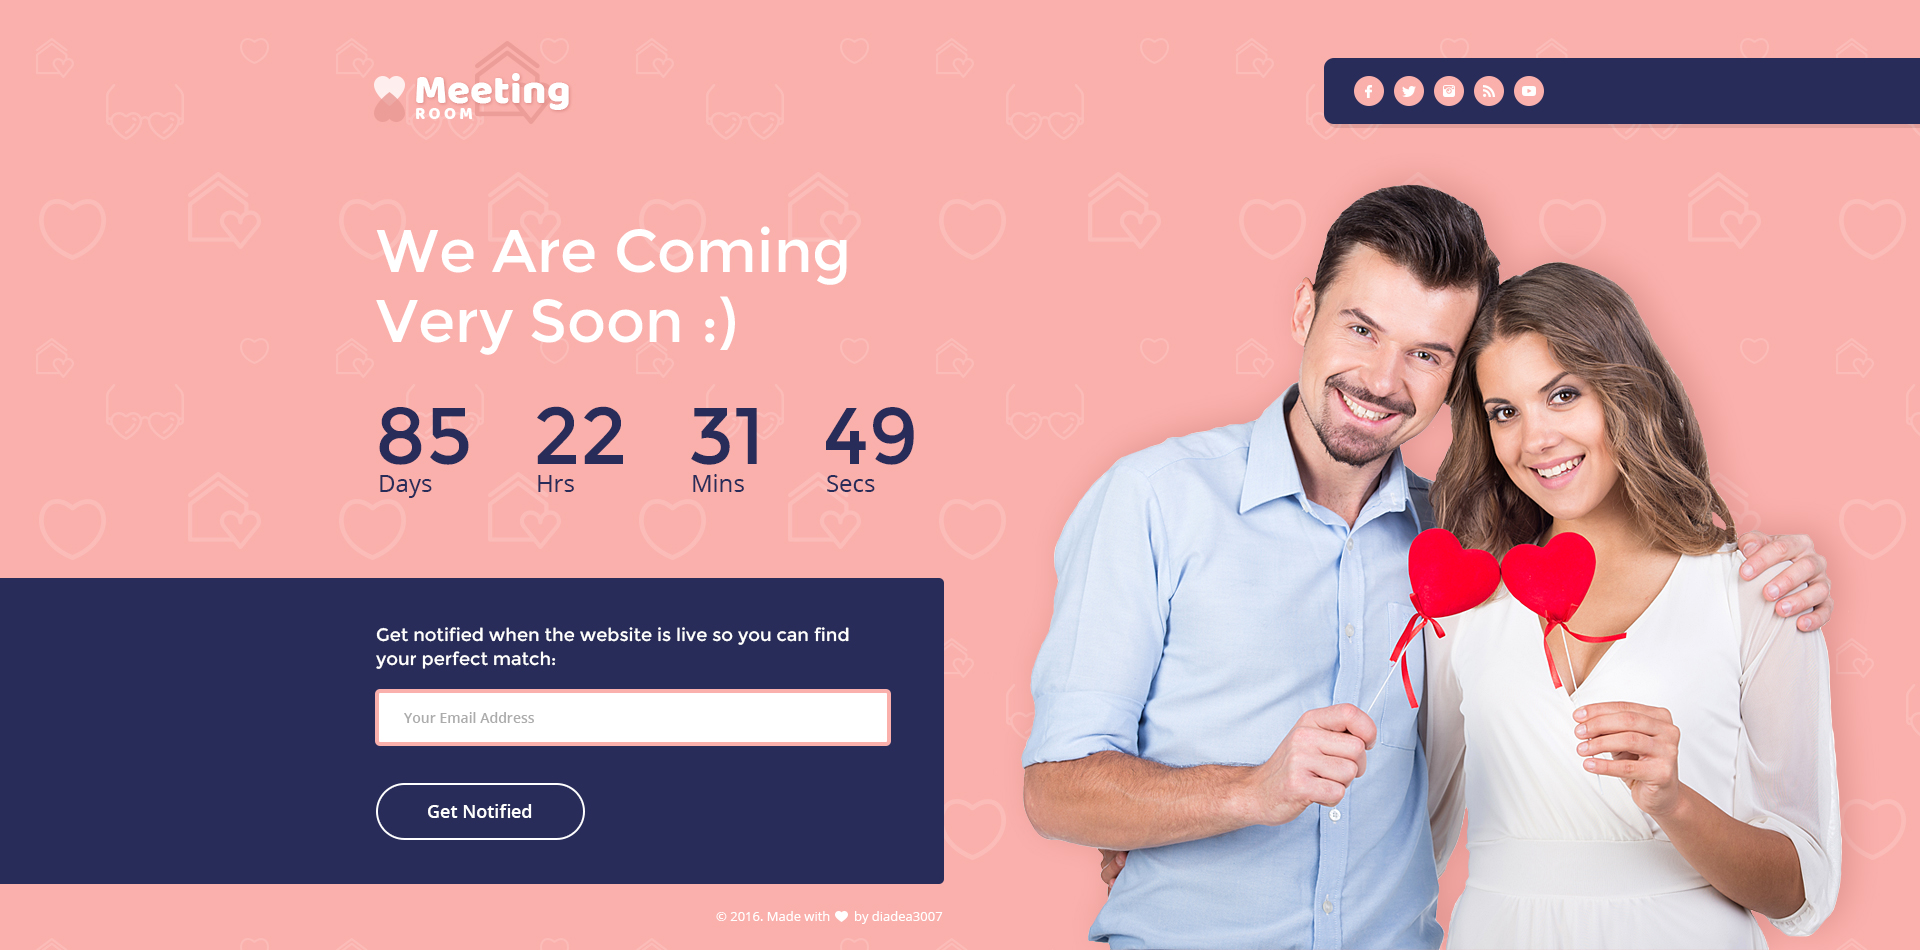 Dating-Website-Pop-ups